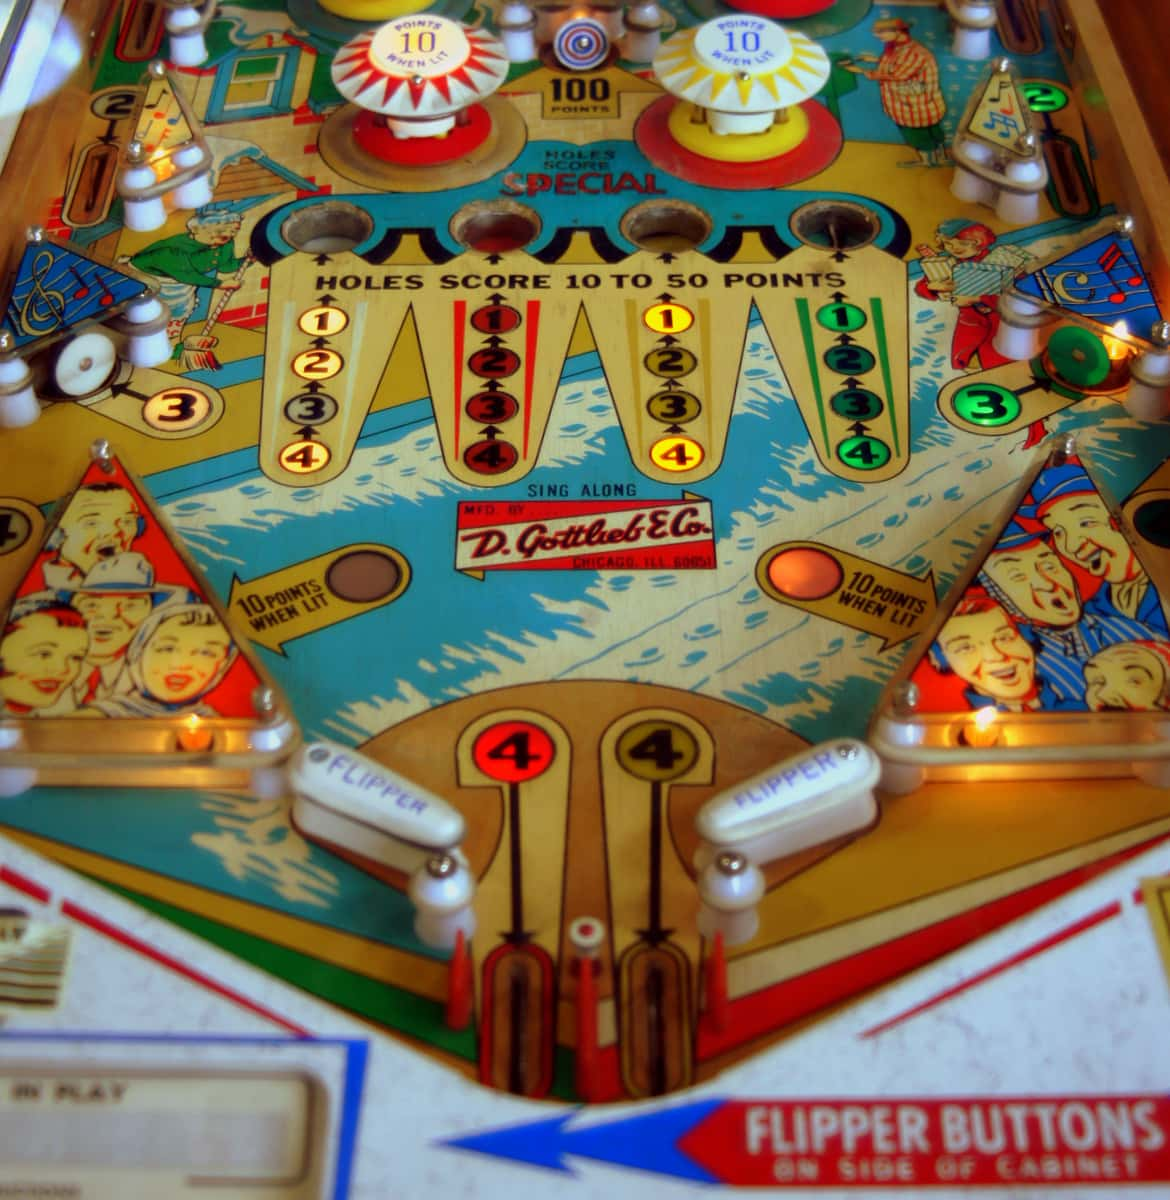 Vintage pinball machine with flippers